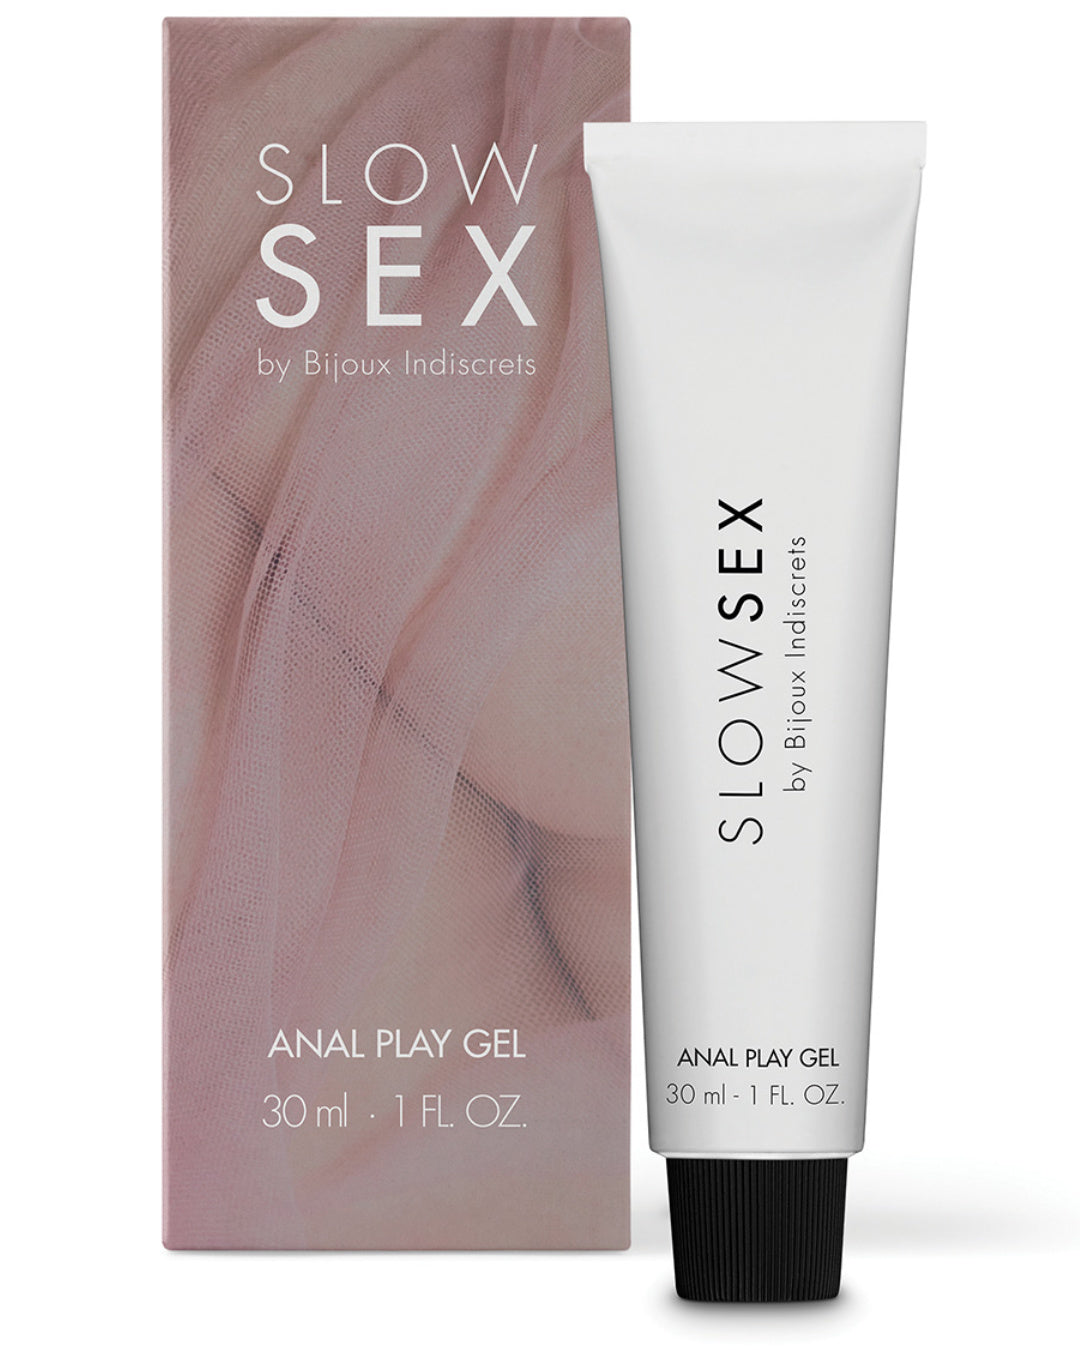 Bijoux  Indiscrets Slow Sex Anal Play Gel 1 oz and box